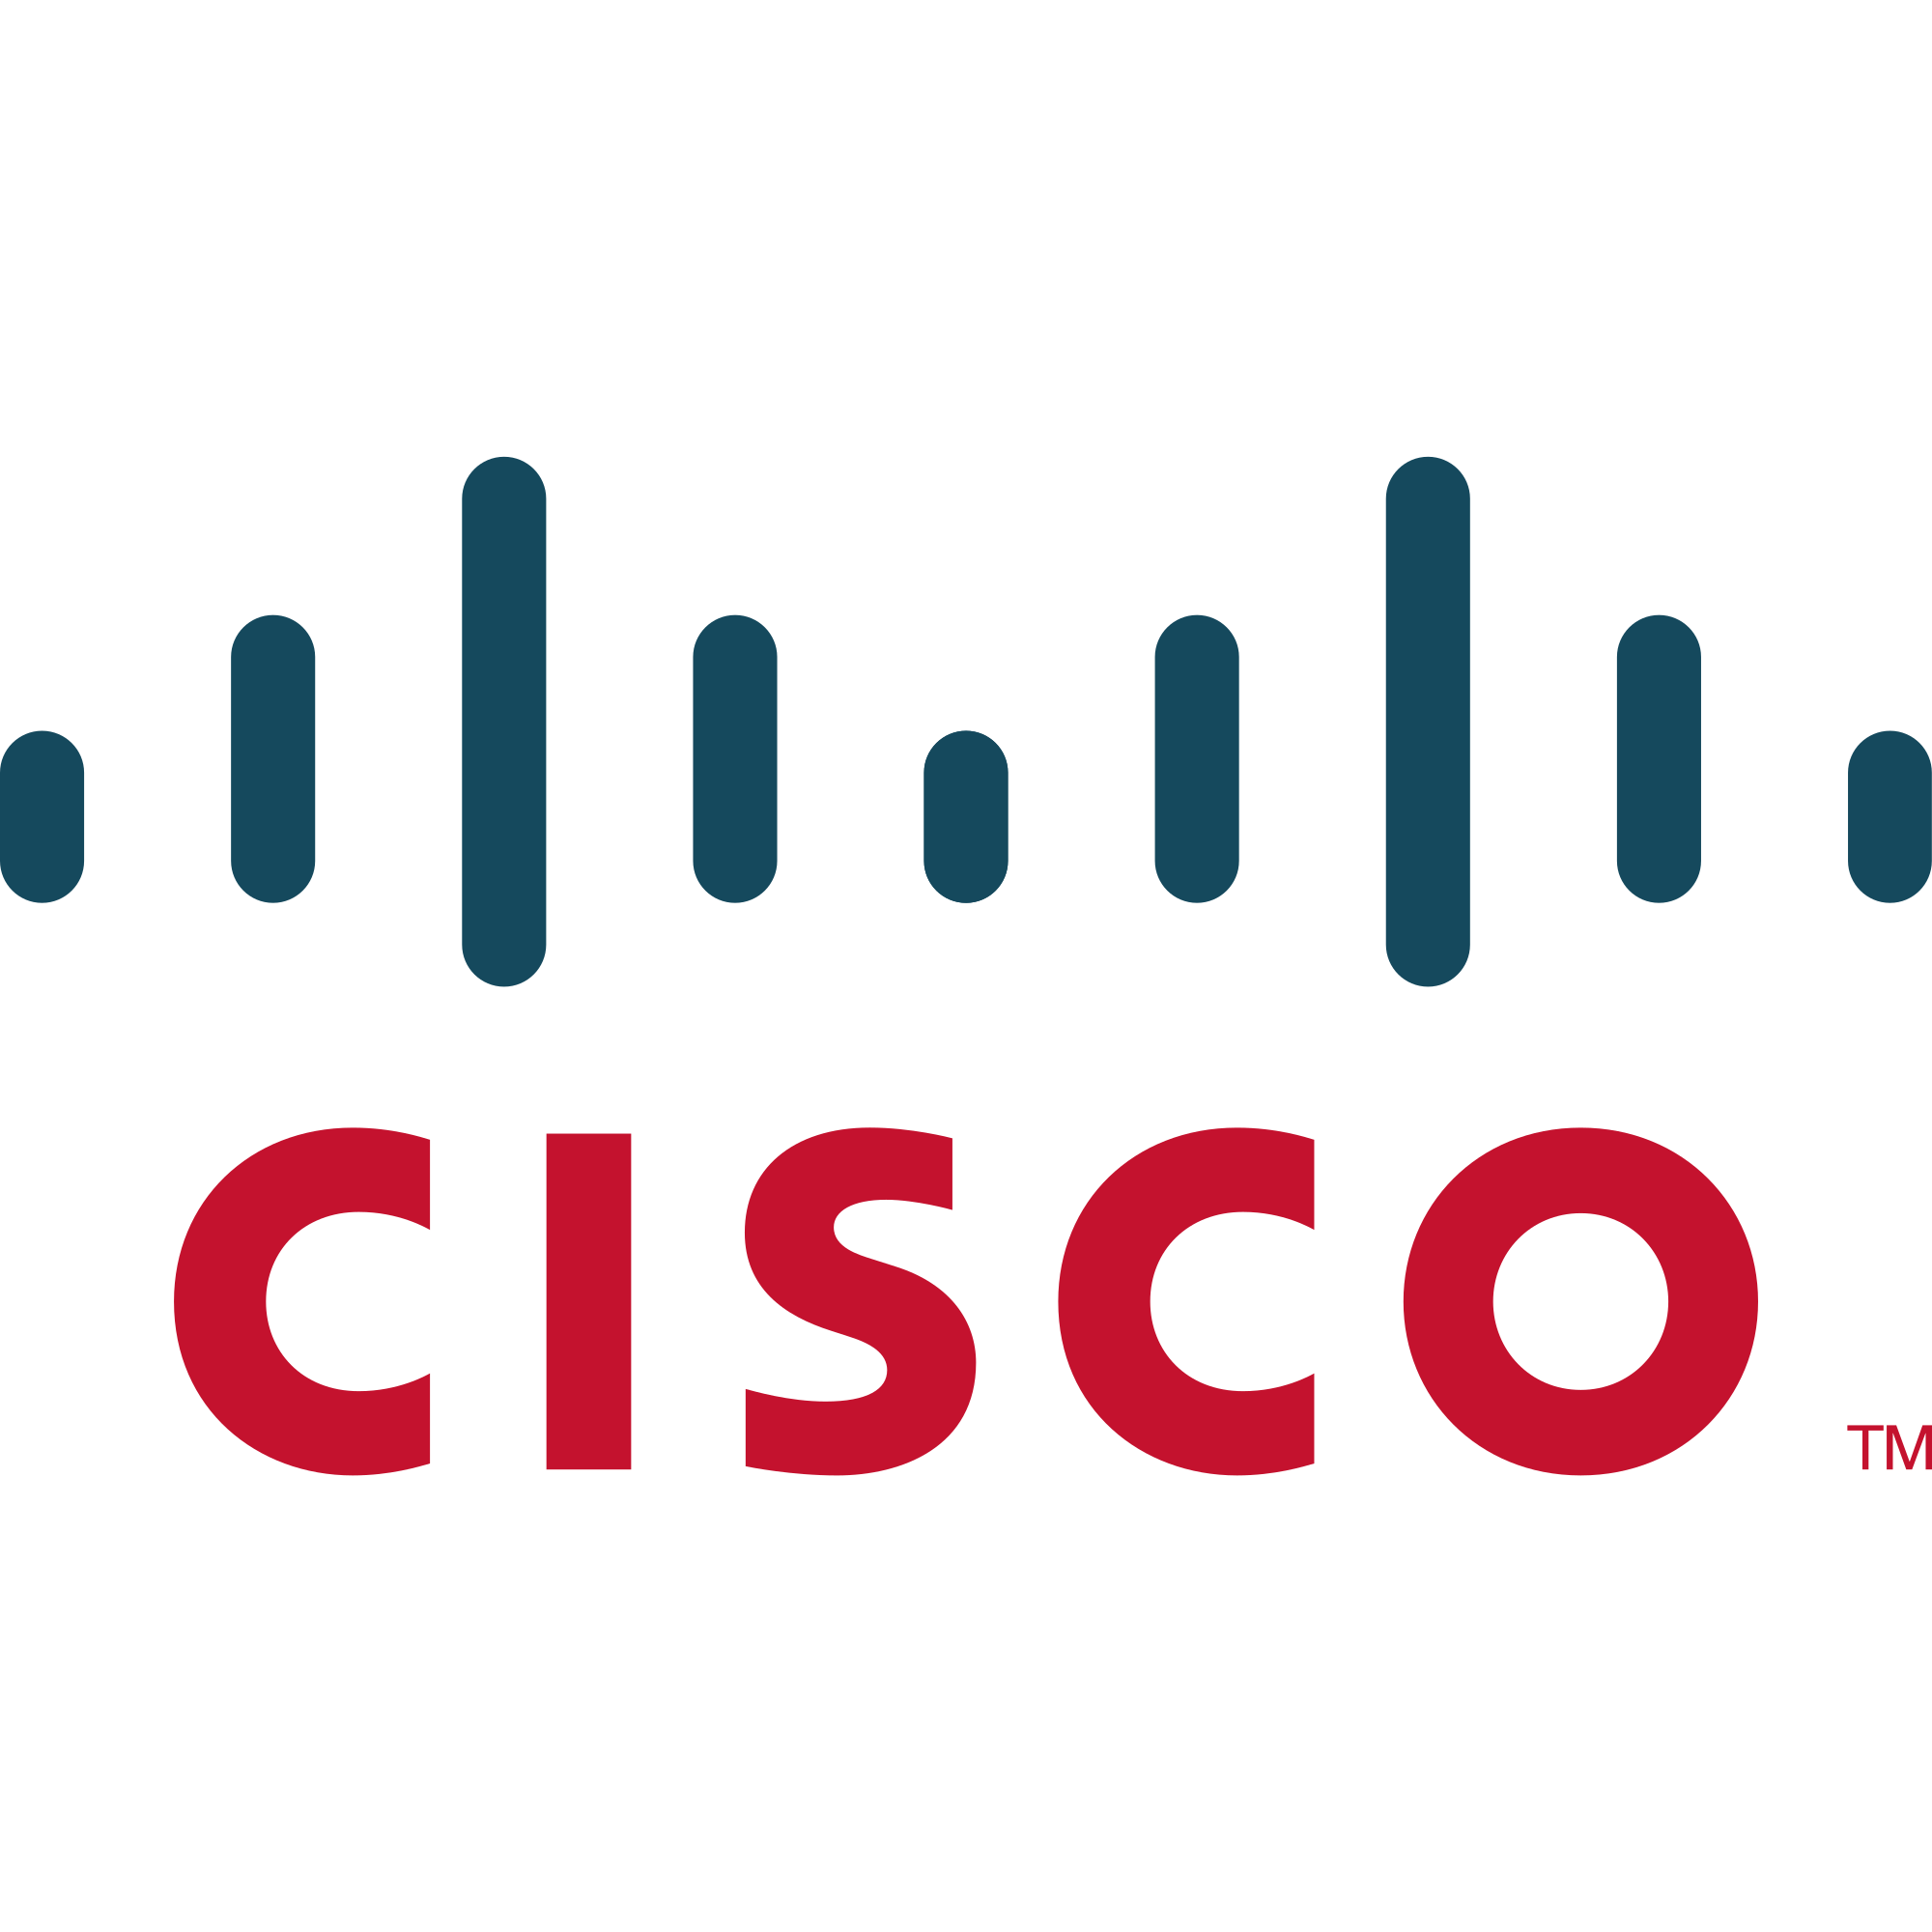 Cisco Aktie